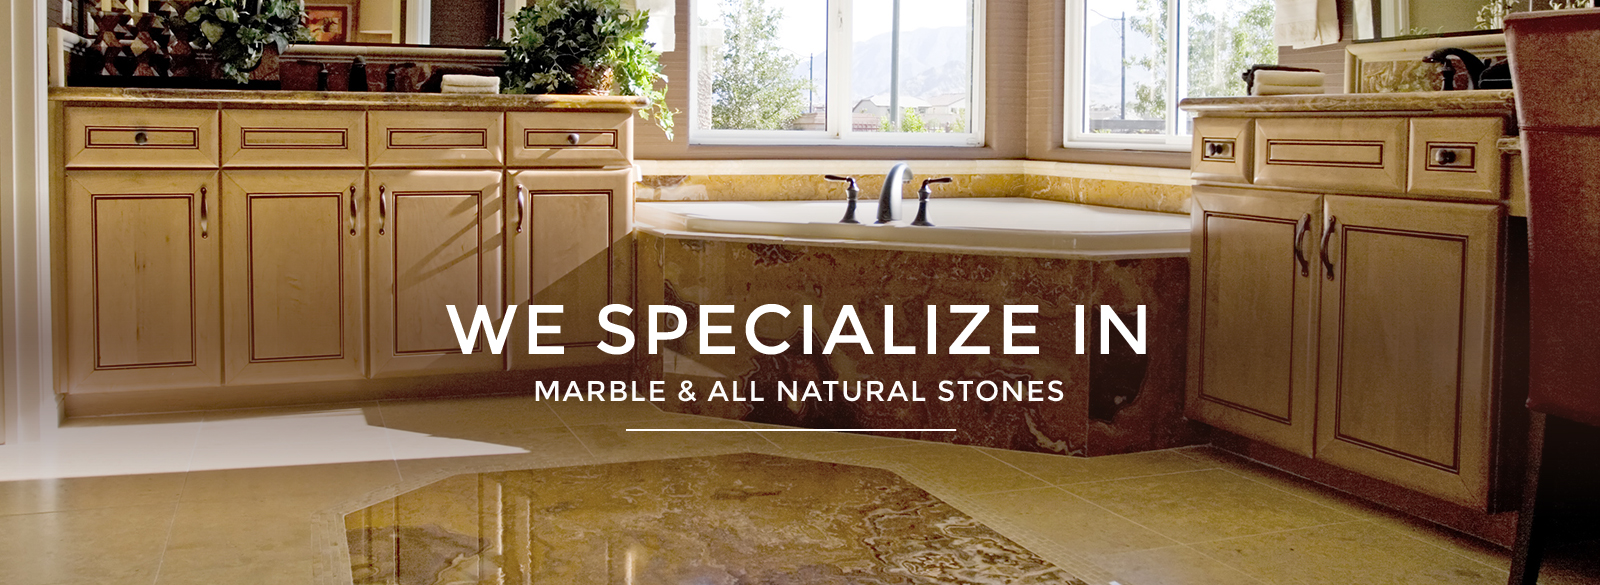 Terrazzo Repair In Nyc Enhance Your Home Value Love Marble